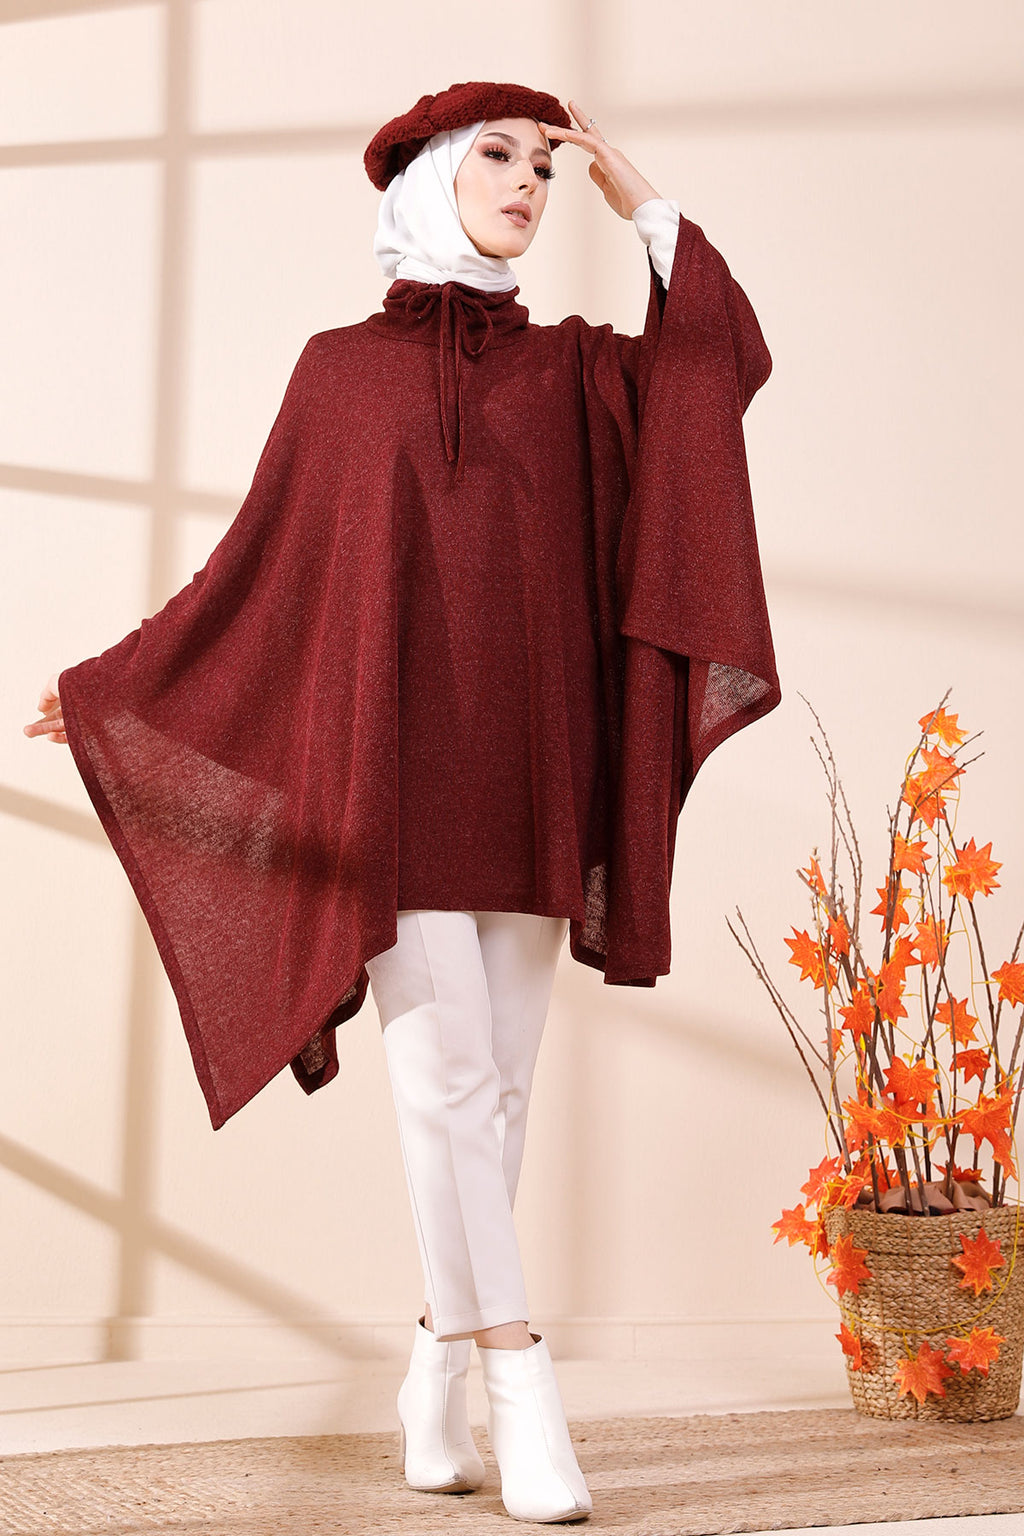 Pancho Claret Red - 3408